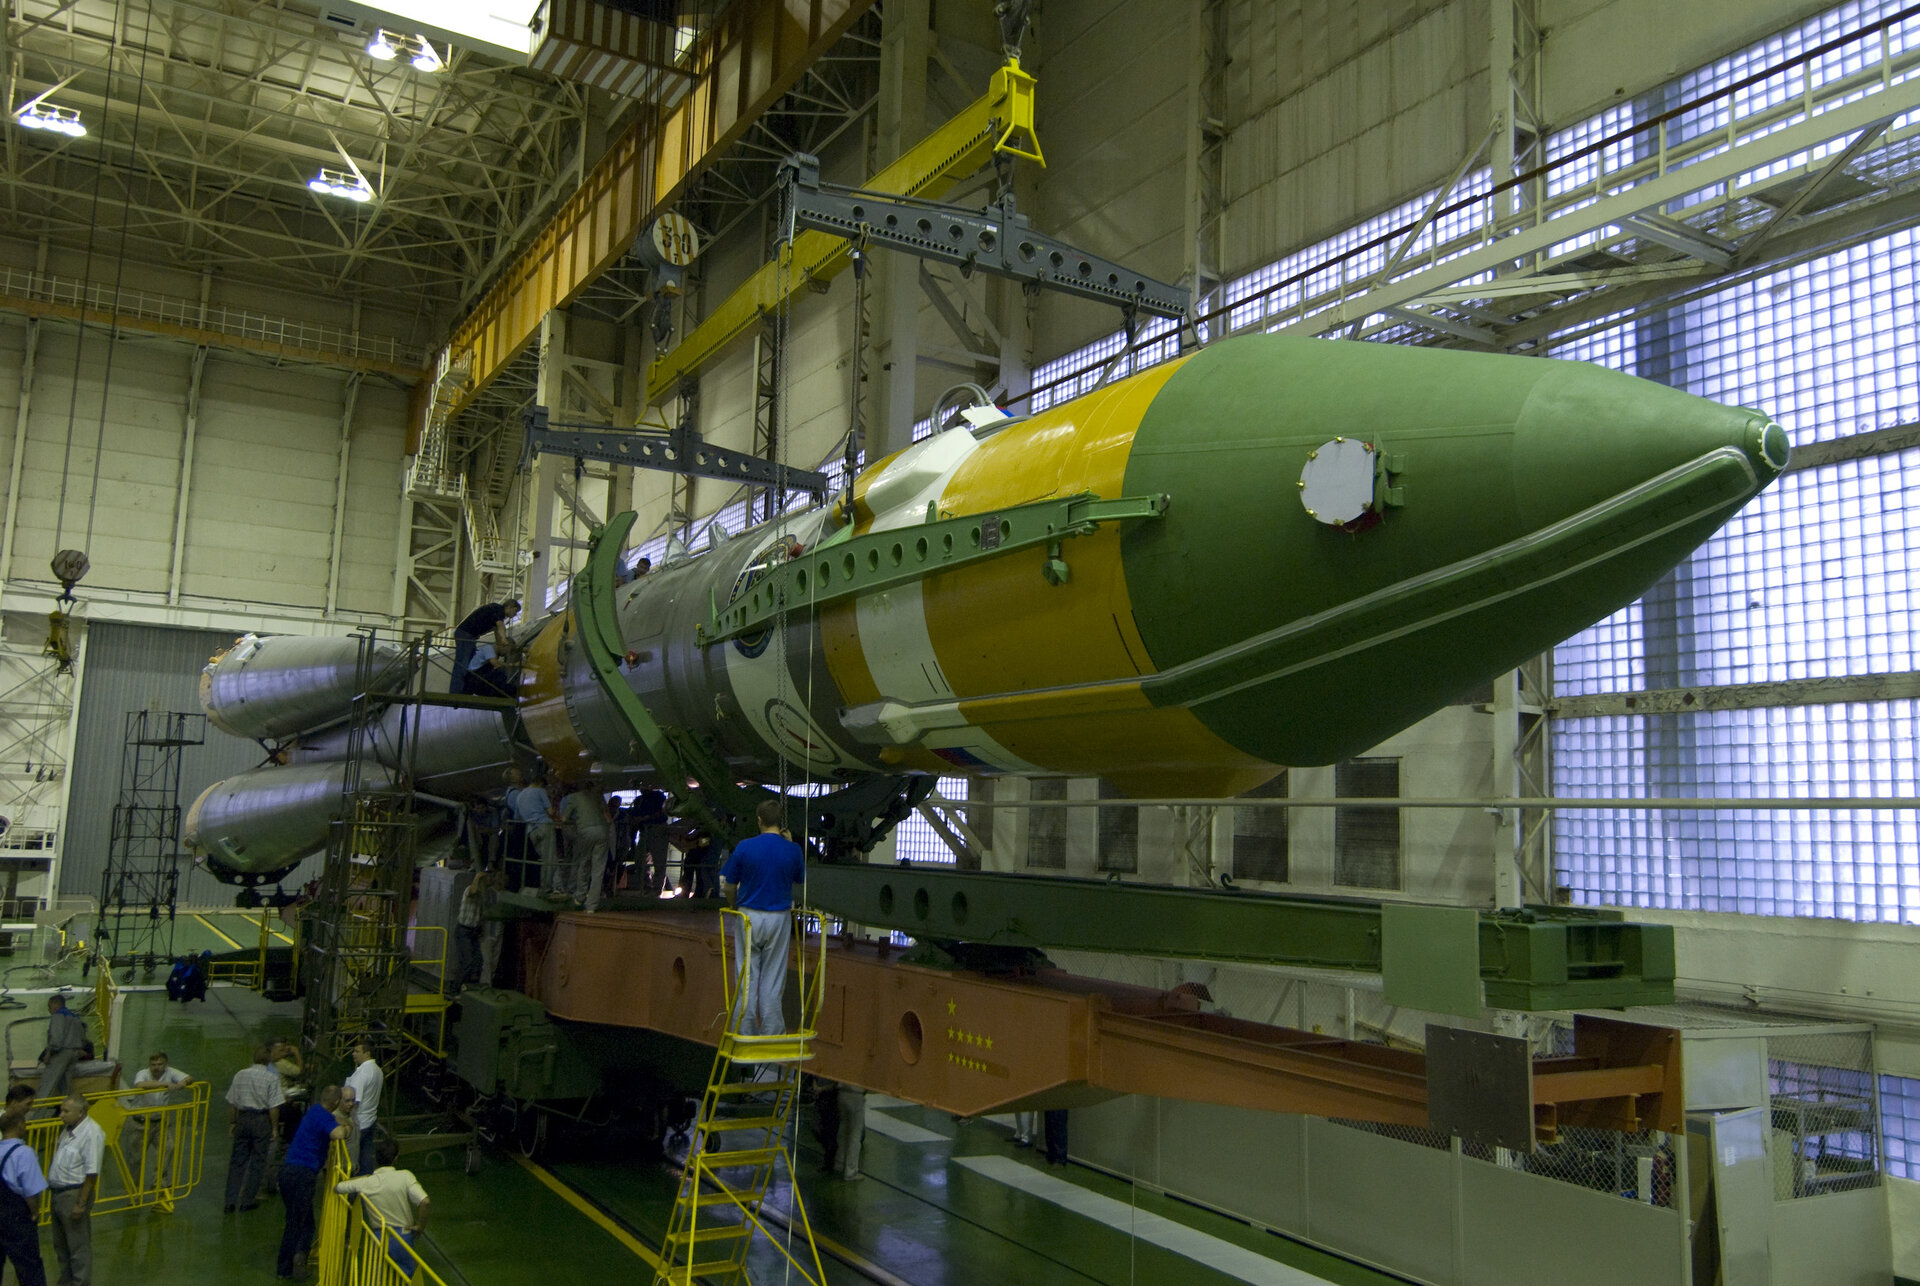 Foton-M3 fairing and assembly, Baikonur, 12 September 2007